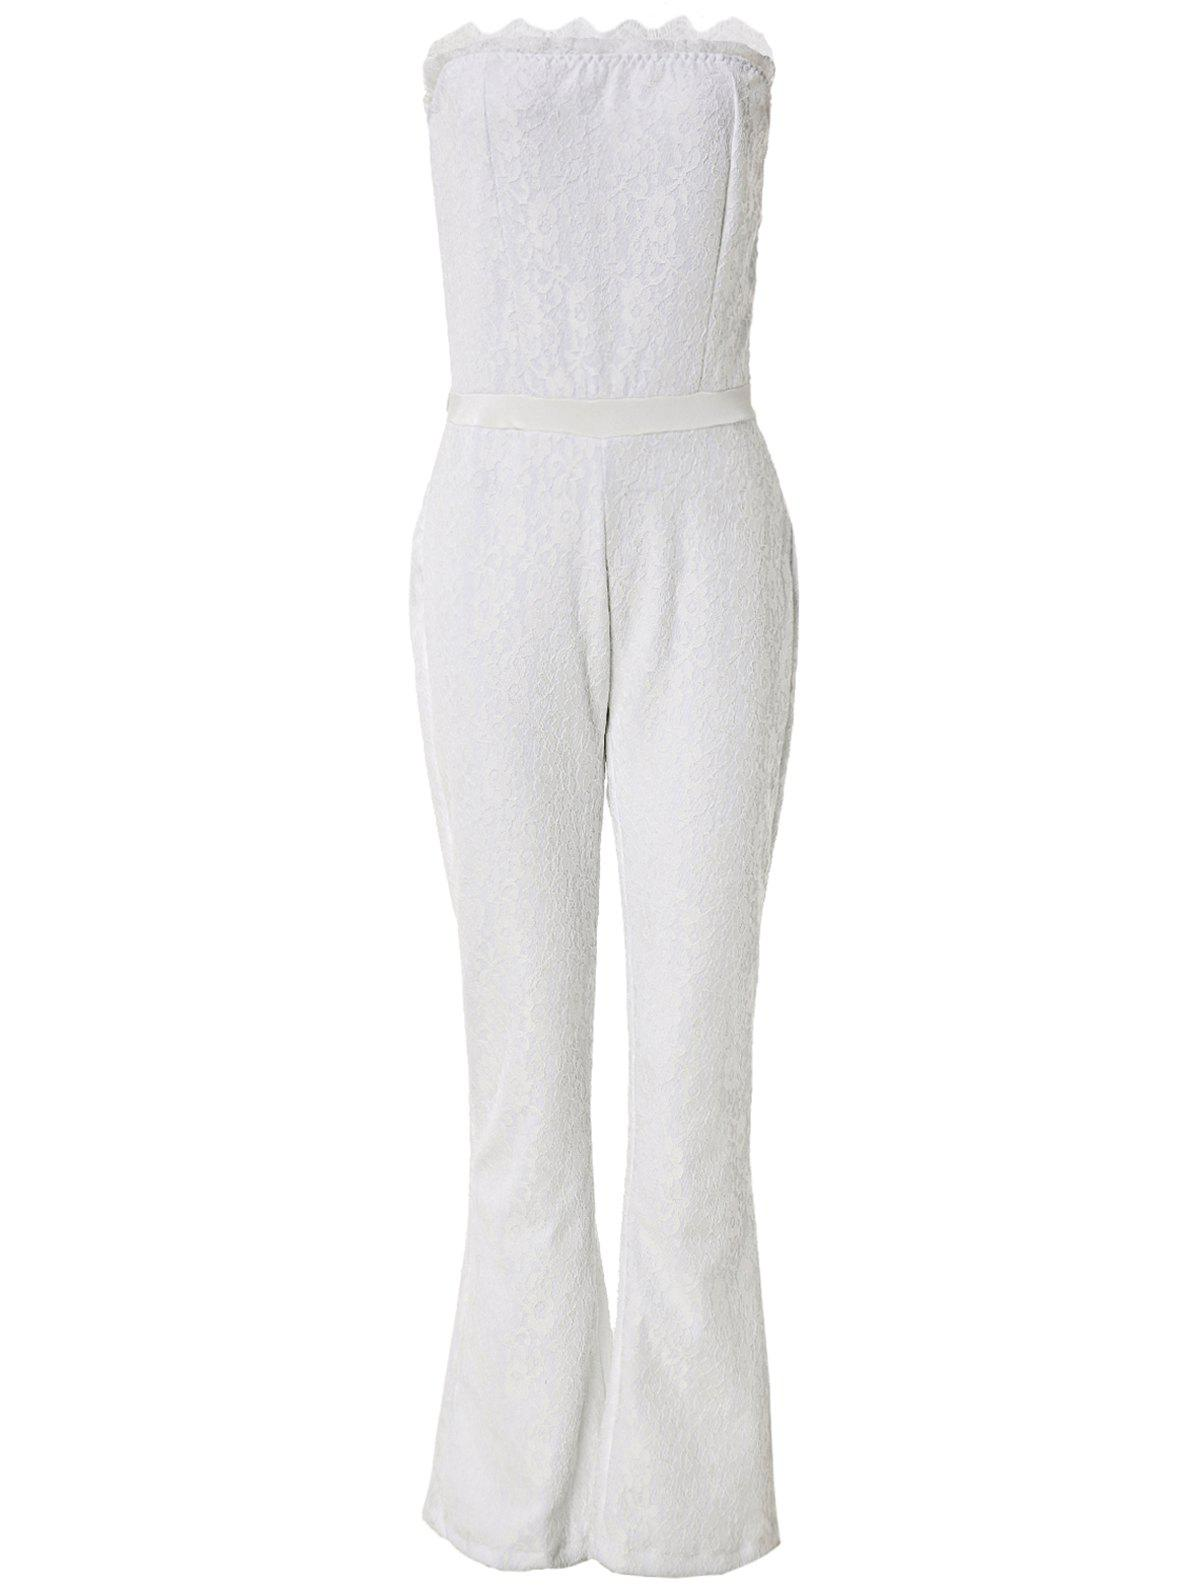 Sexy Women's Strapless Lace Wide Leg Jumpsuit - WHITE S